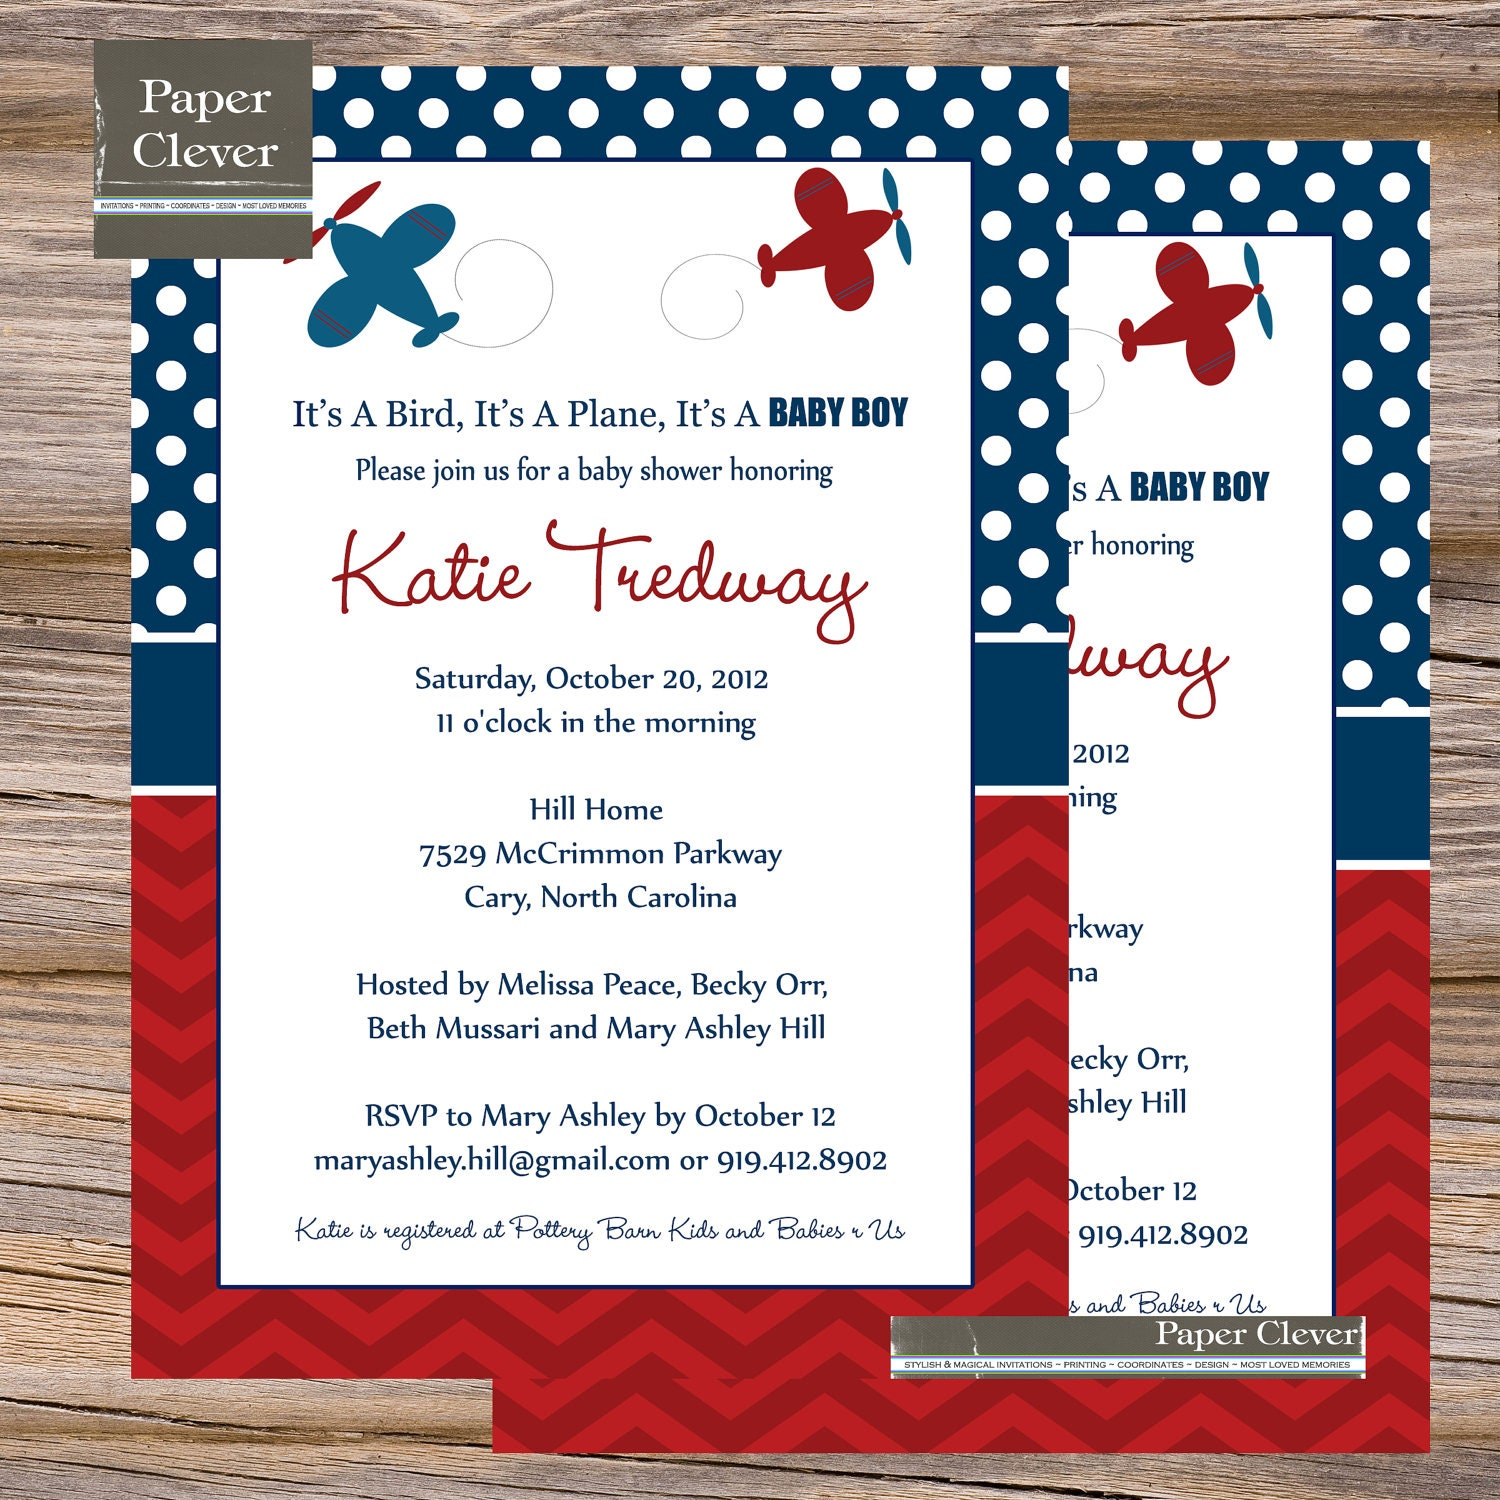 Baby Shower Invitations Wording For Boys: Airplane Baby Shower Invitations Modern Red By